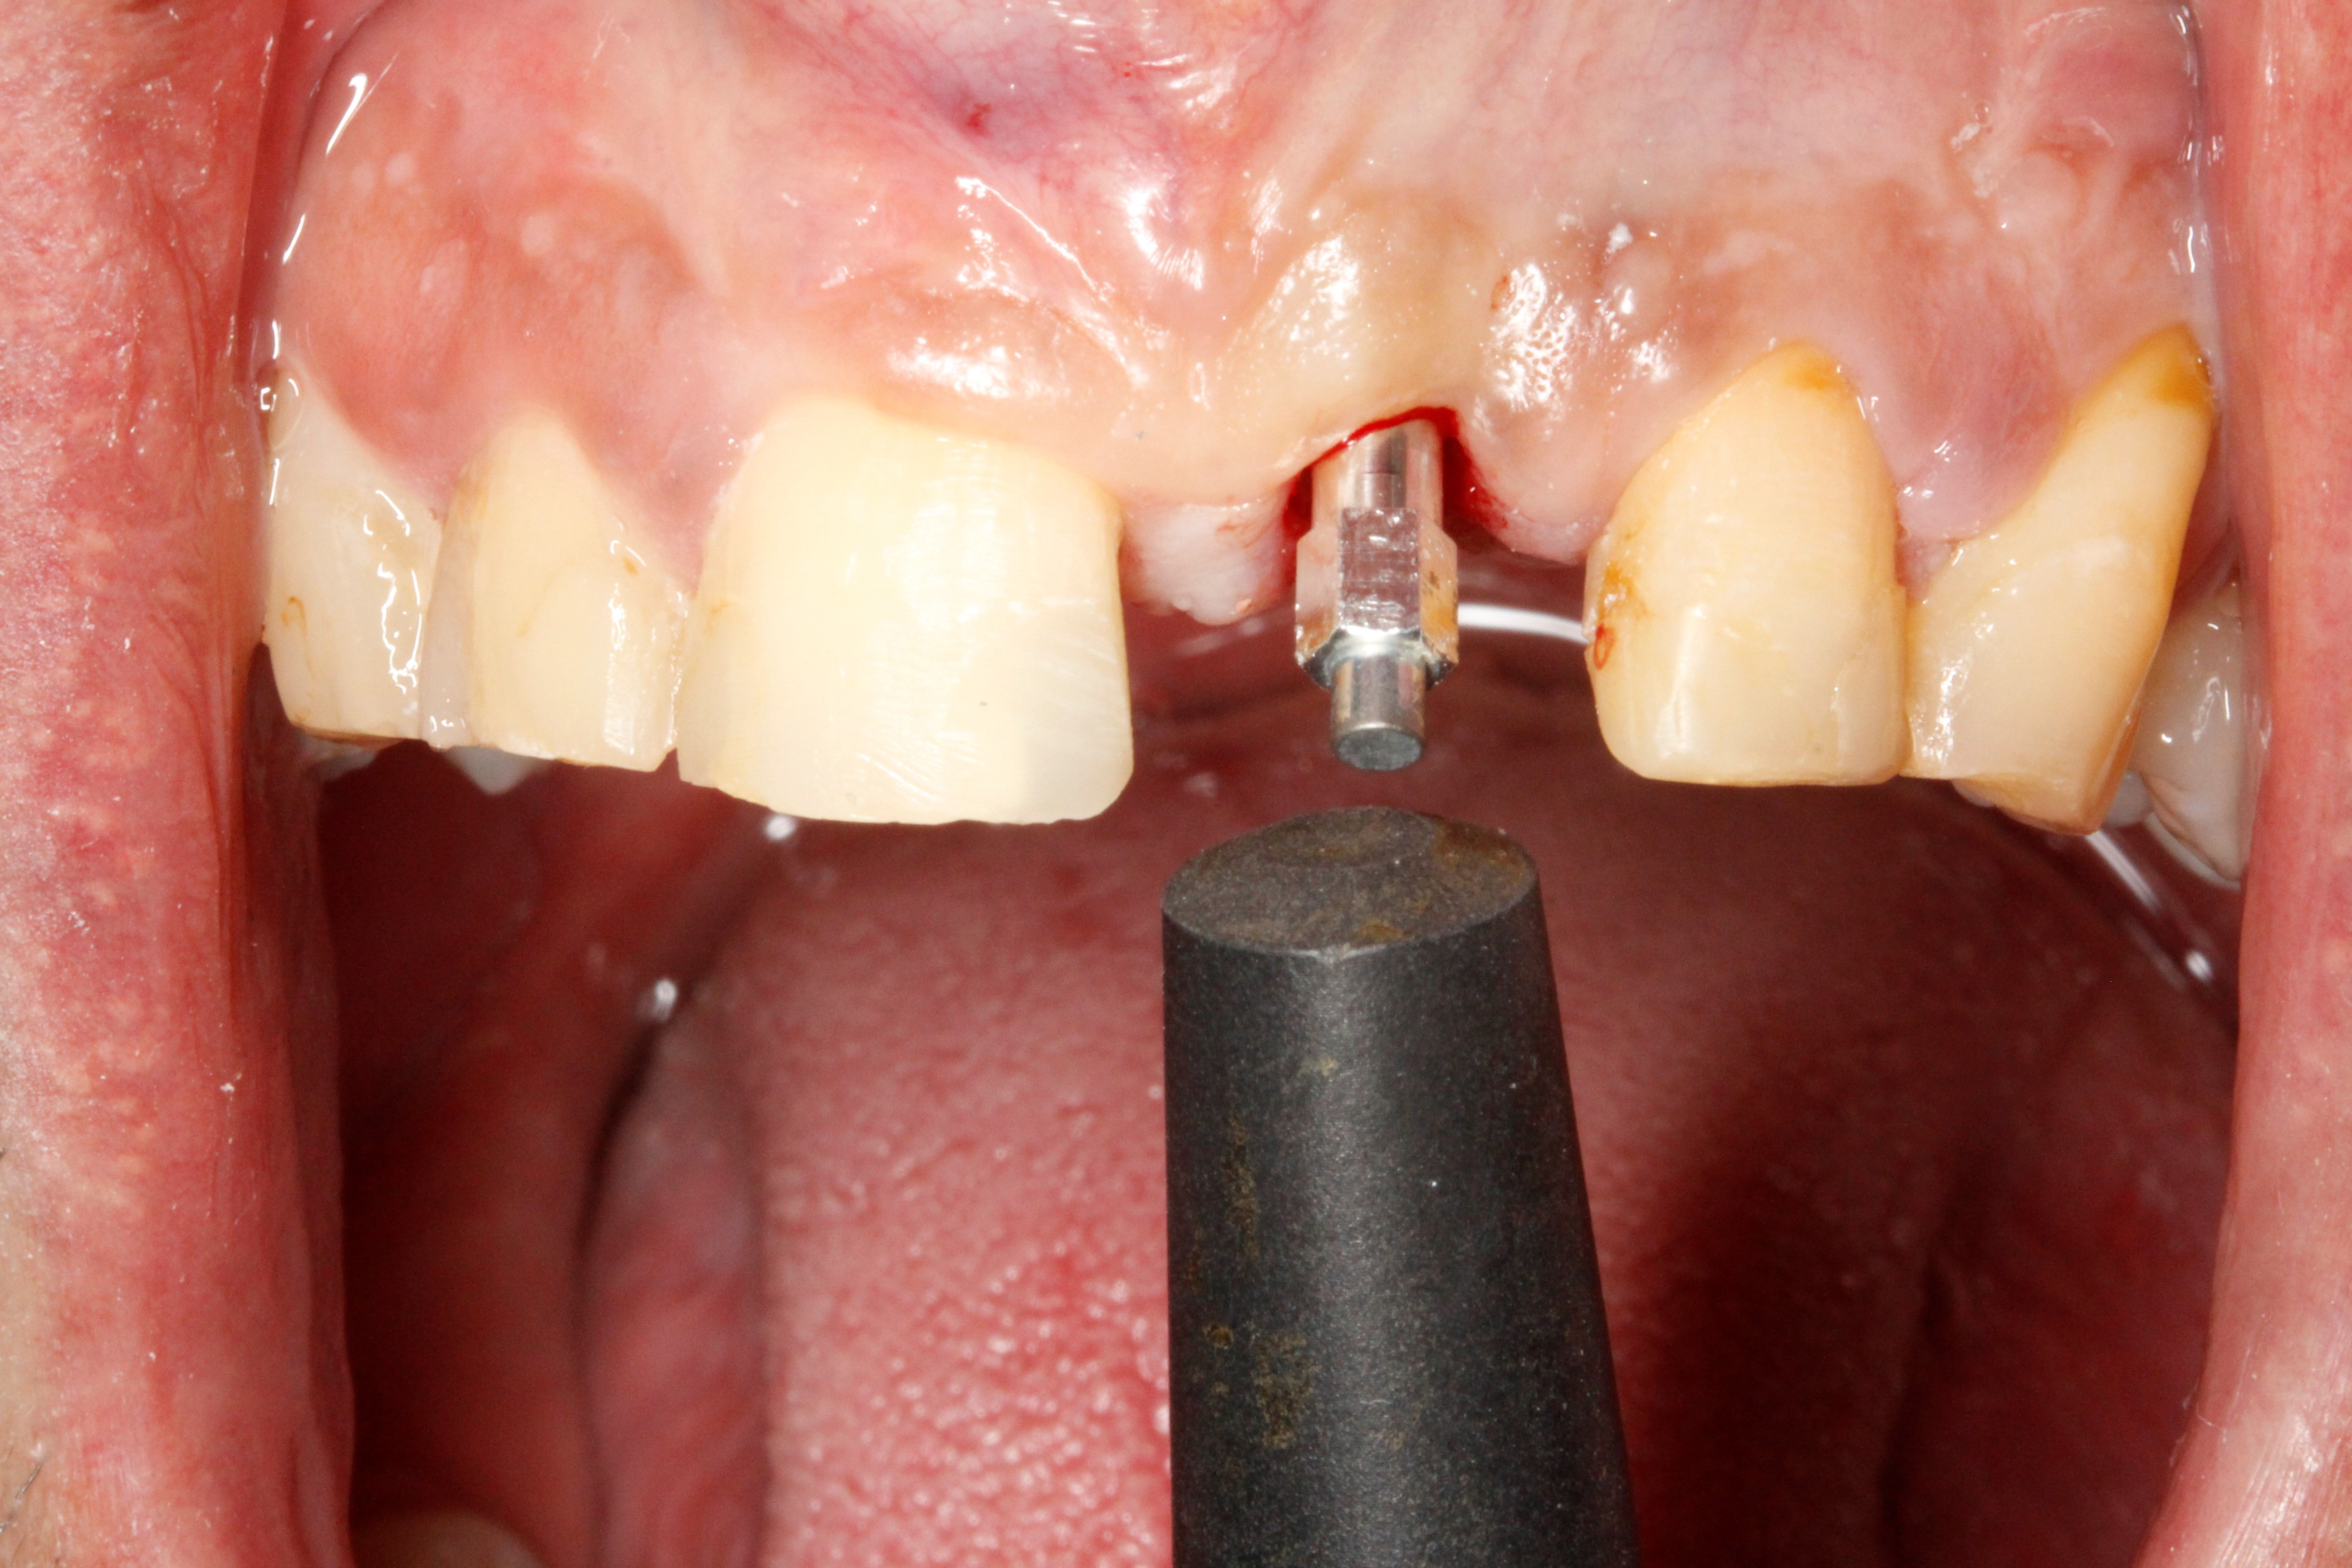 Figure 5 The position of the device must be kept orthogonal and 3 mm from the abutment to get significant results.